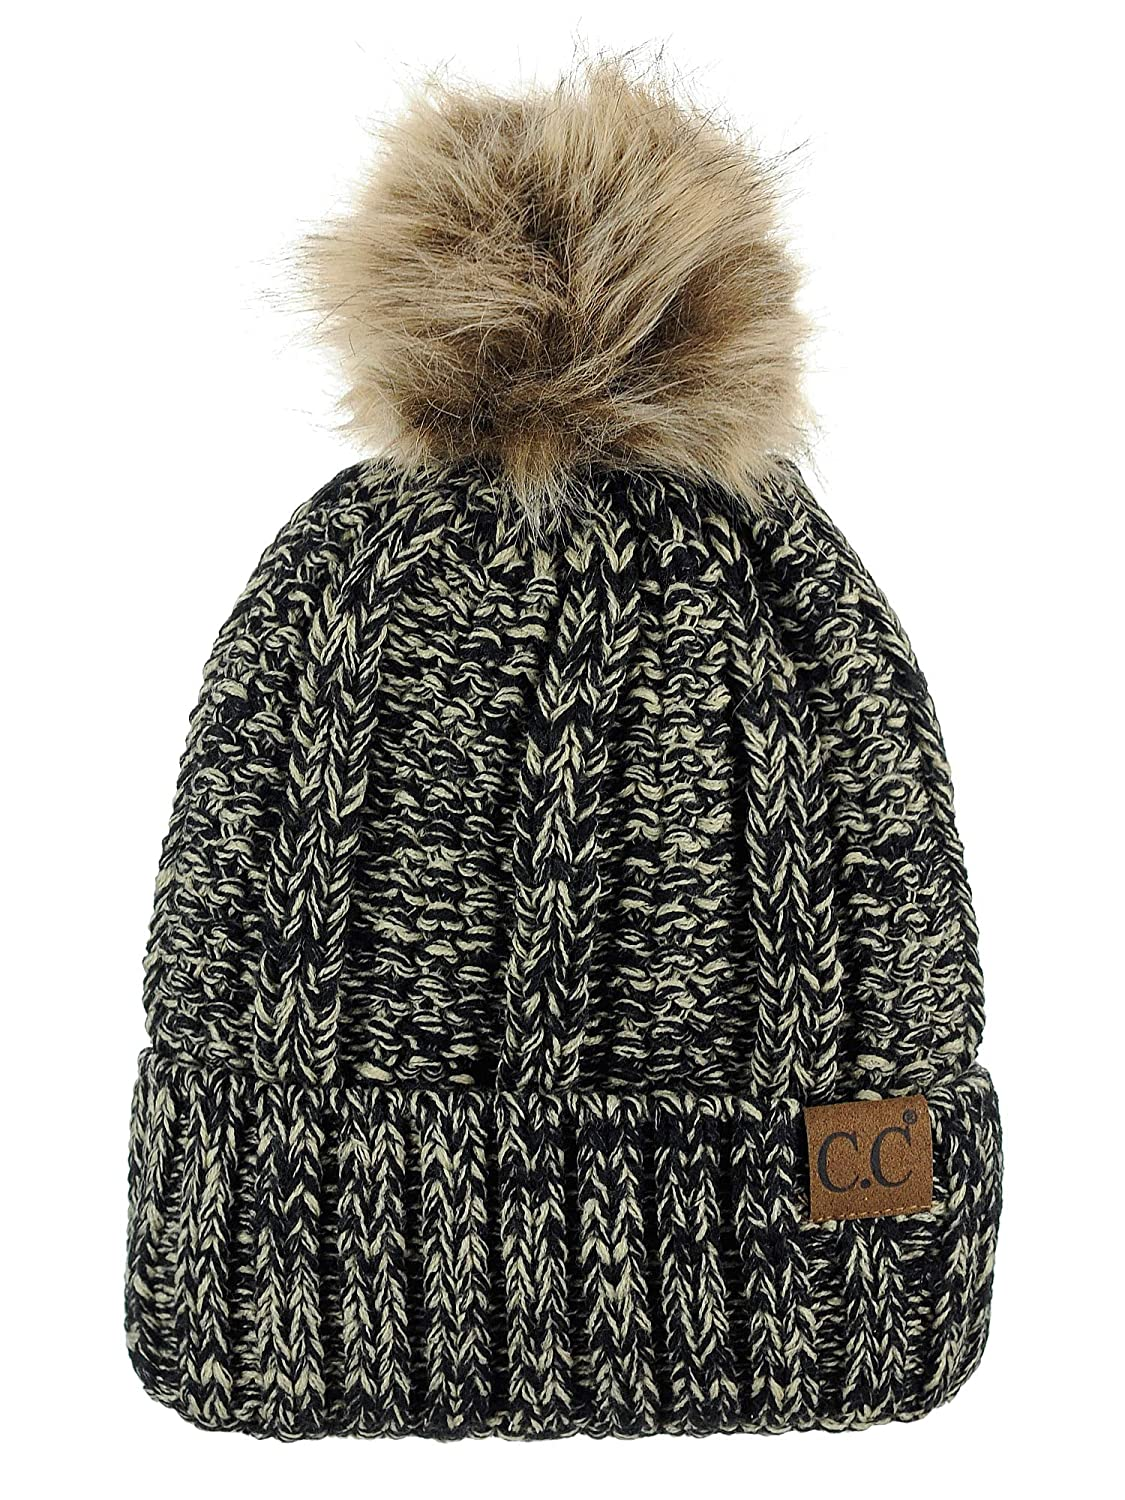 C.C Thick Cable Knit Faux Fuzzy Fur Pom Fleece Lined Skull Cap Cuff Beanie f554e689025